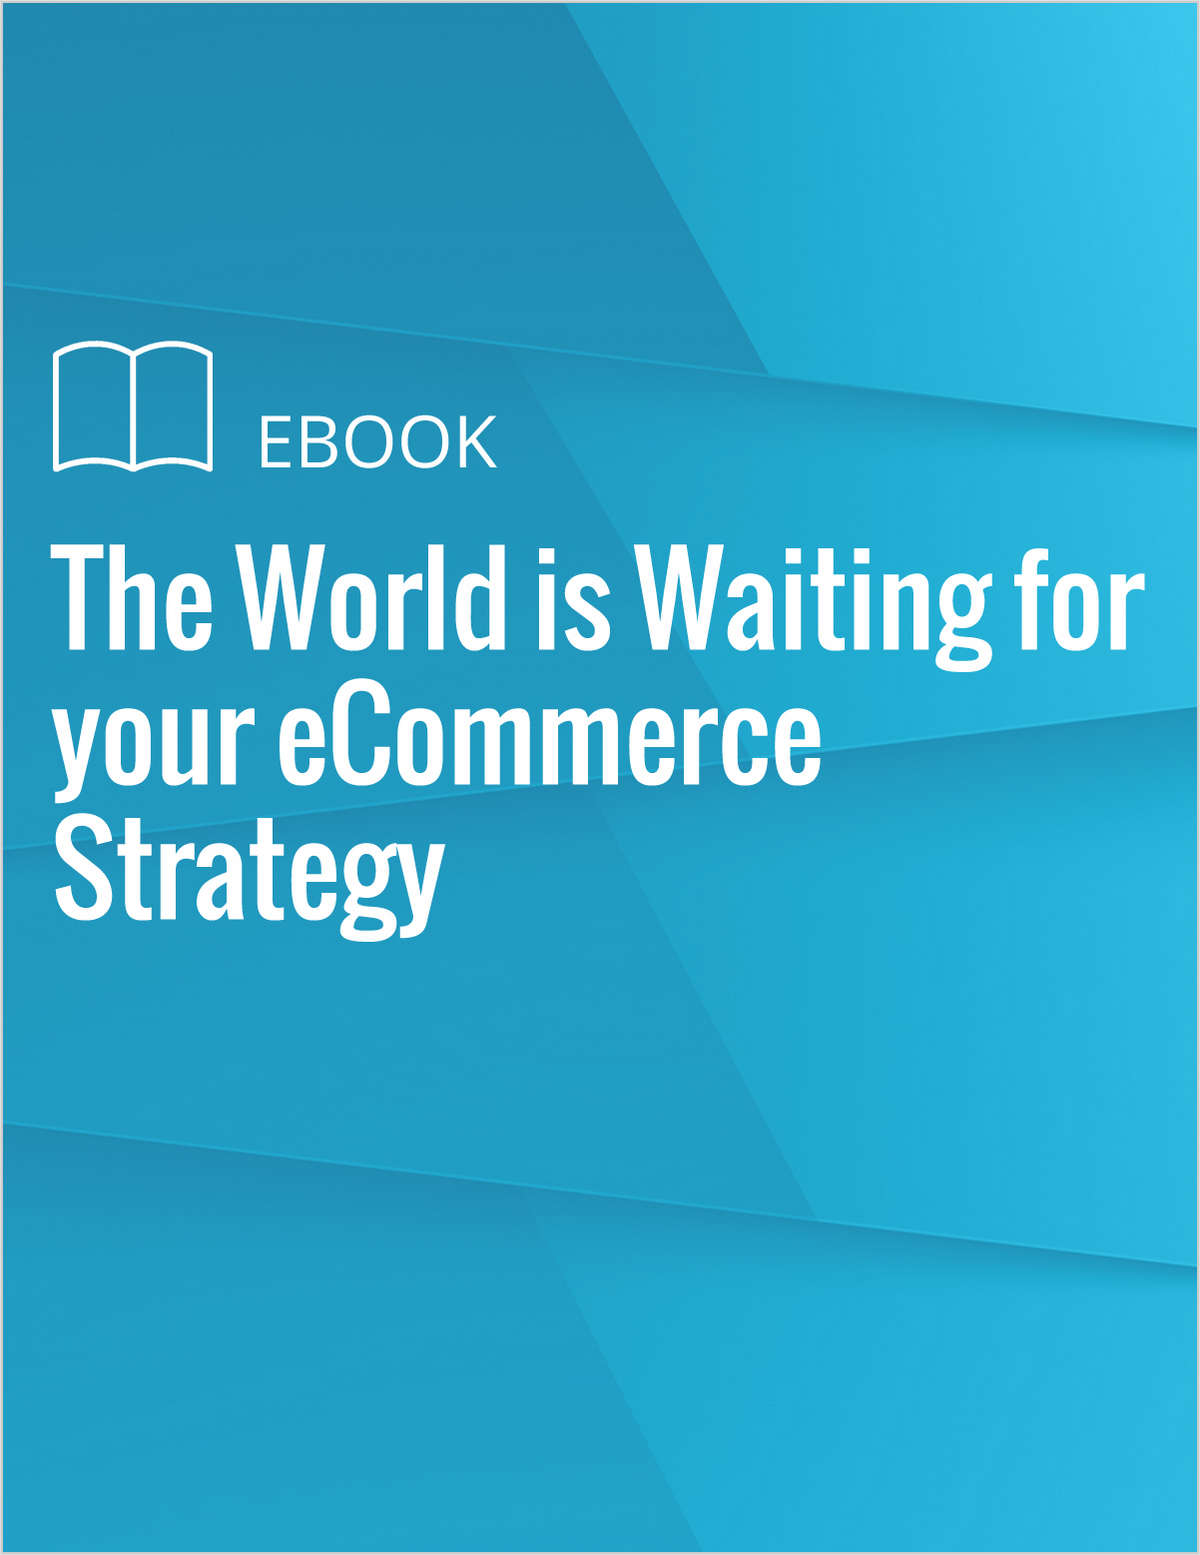 The World is Waiting for your eCommerce Strategy